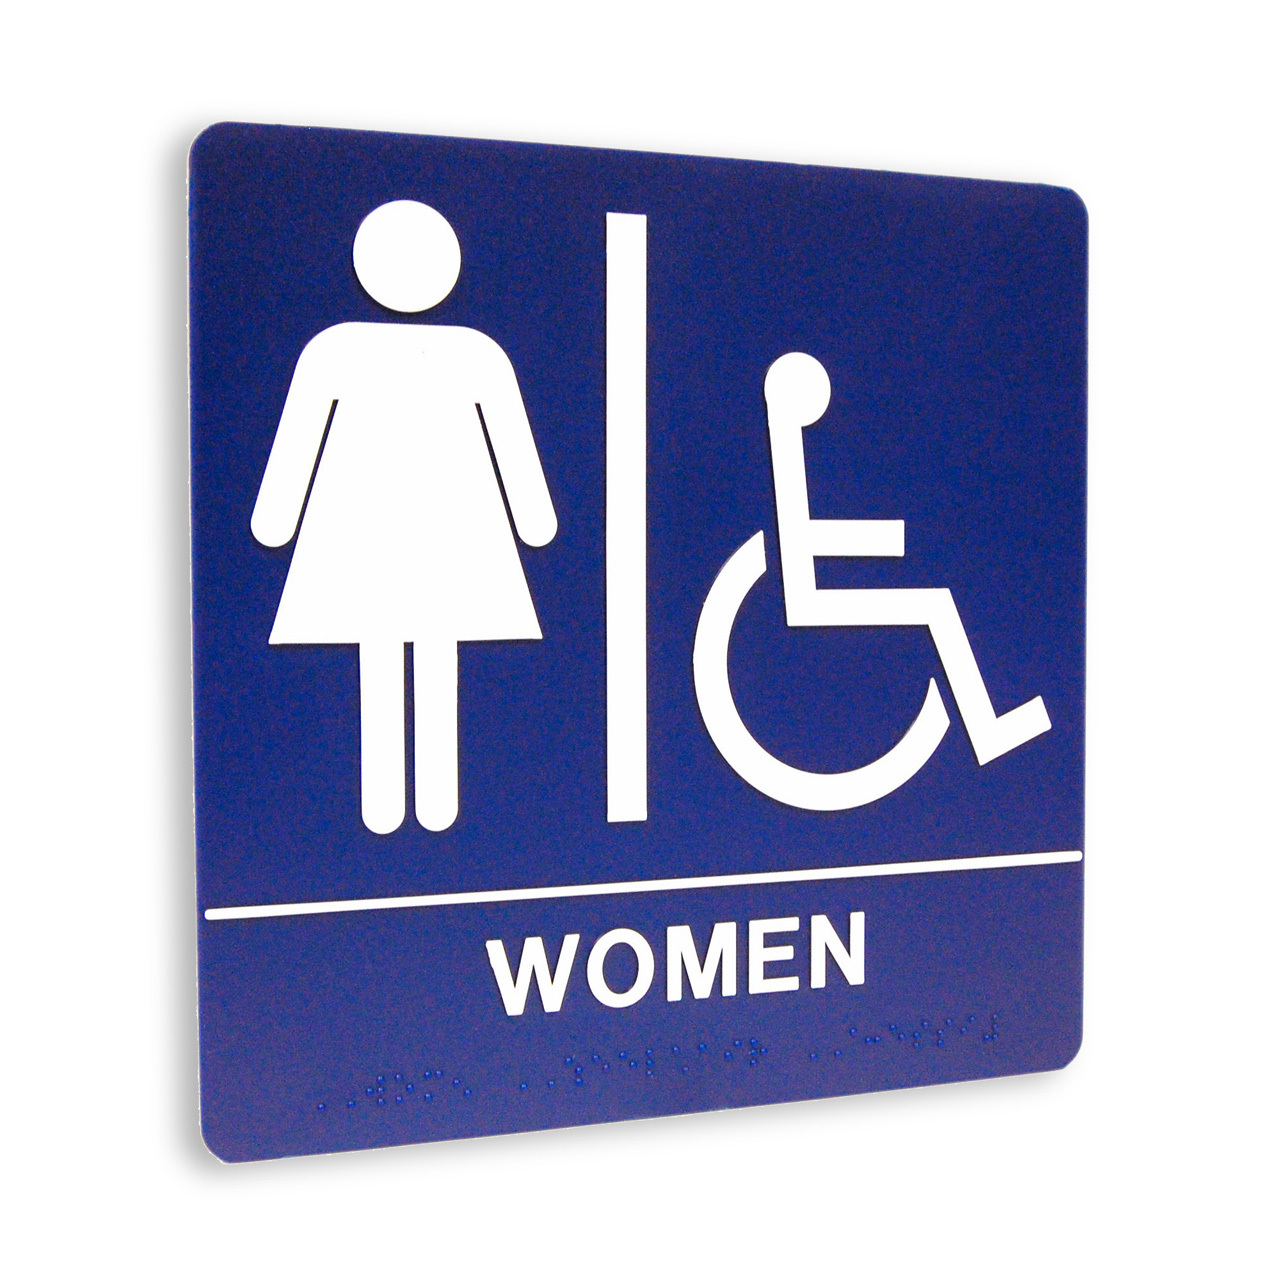 Printable bathroom sign - Restroom Signs Printable Restroom Signs Printable Restroom Signs